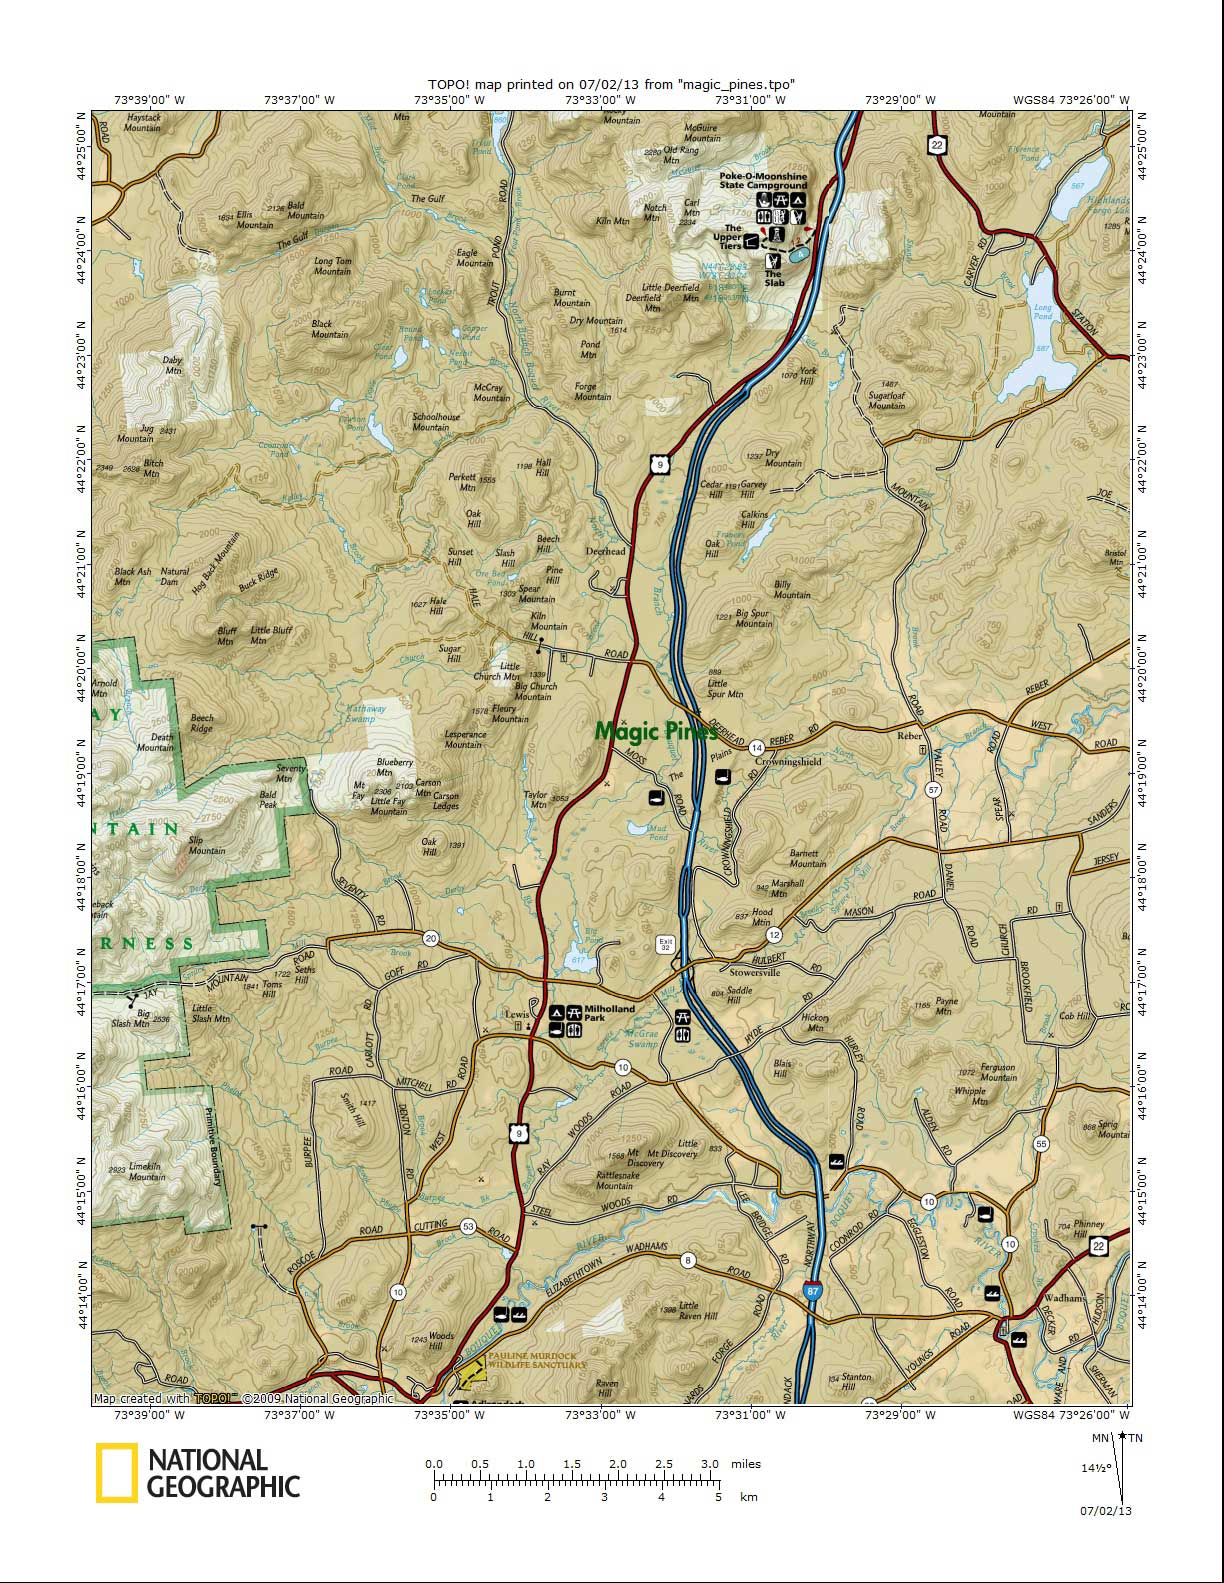 Topographic Map Centered on Campground